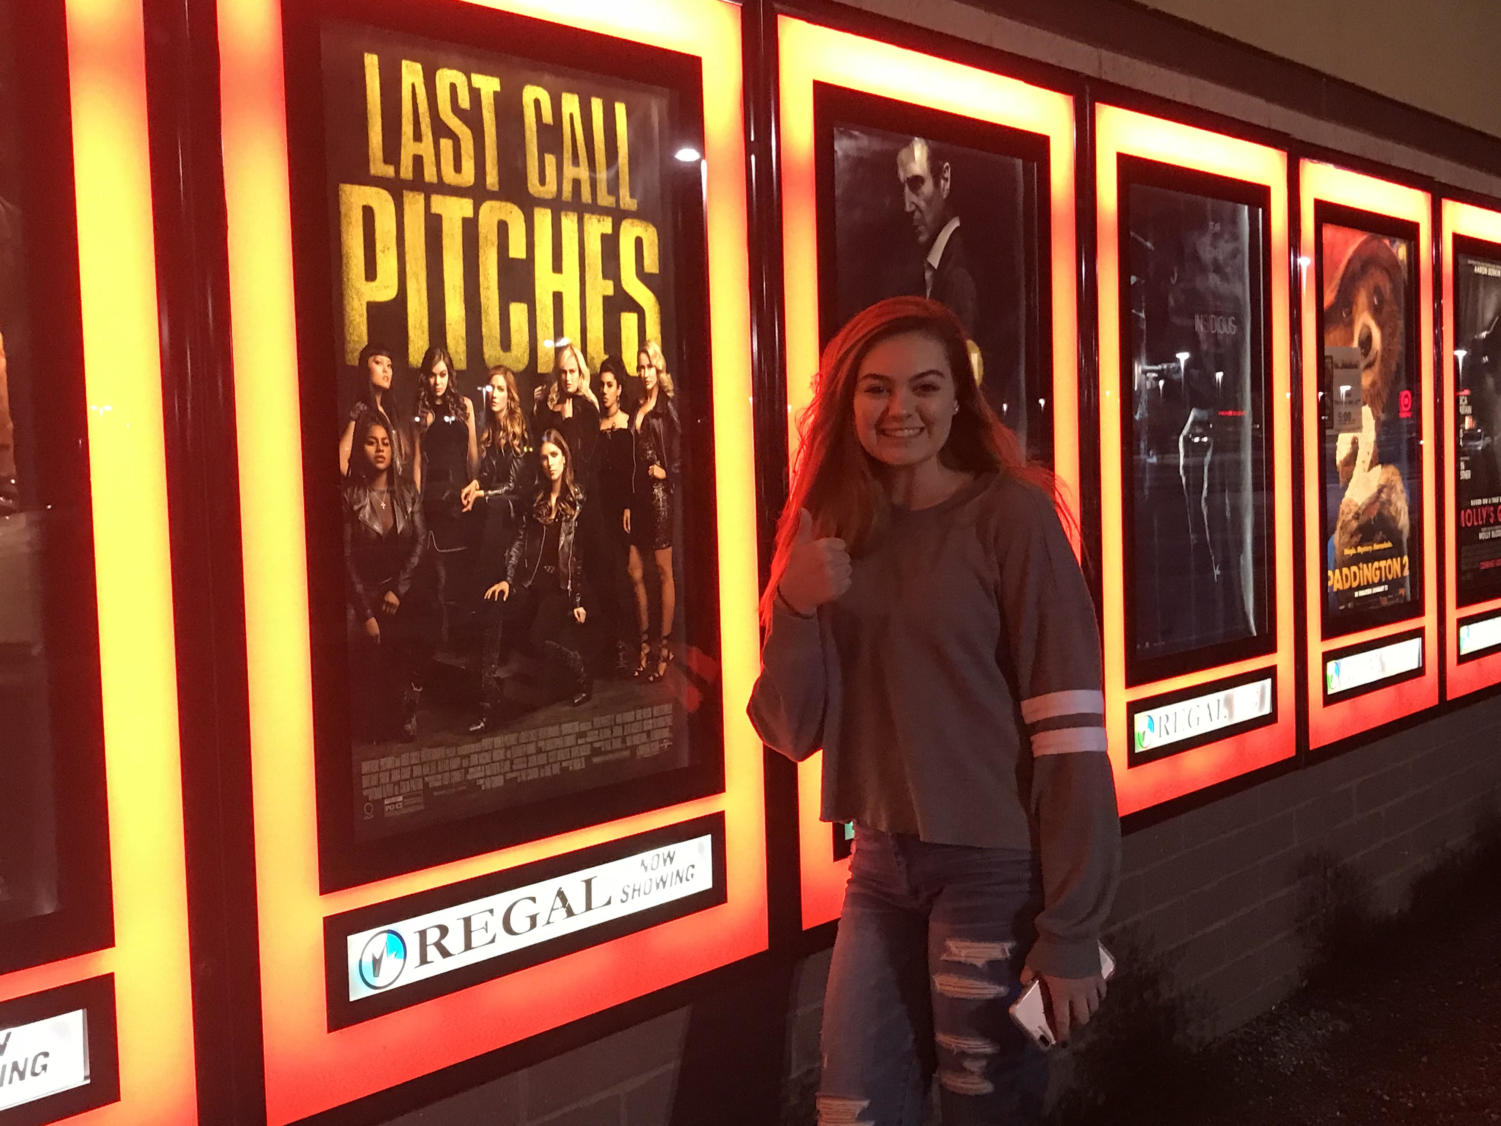 Defying the cold temperatures, Alyssa Marchese prepares to watch Pitch Perfect 3.